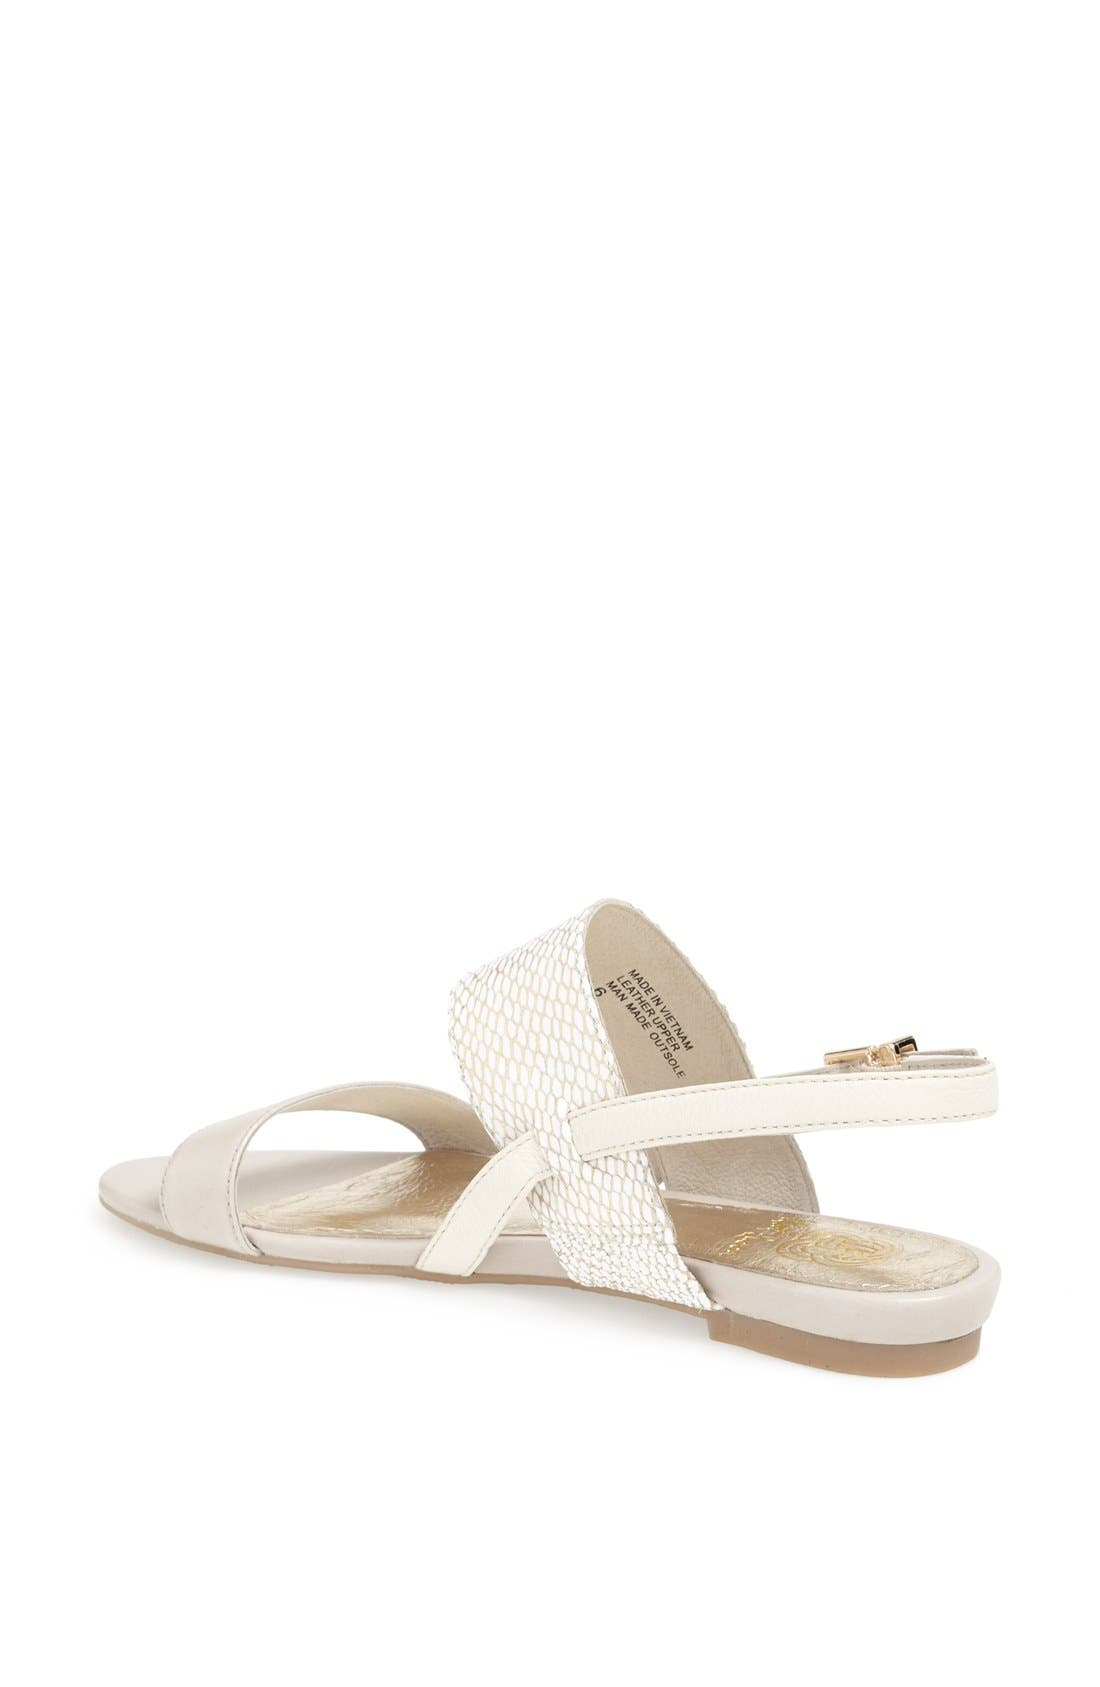 Alternate Image 2  - Elliott Lucca 'Mia' Sandal